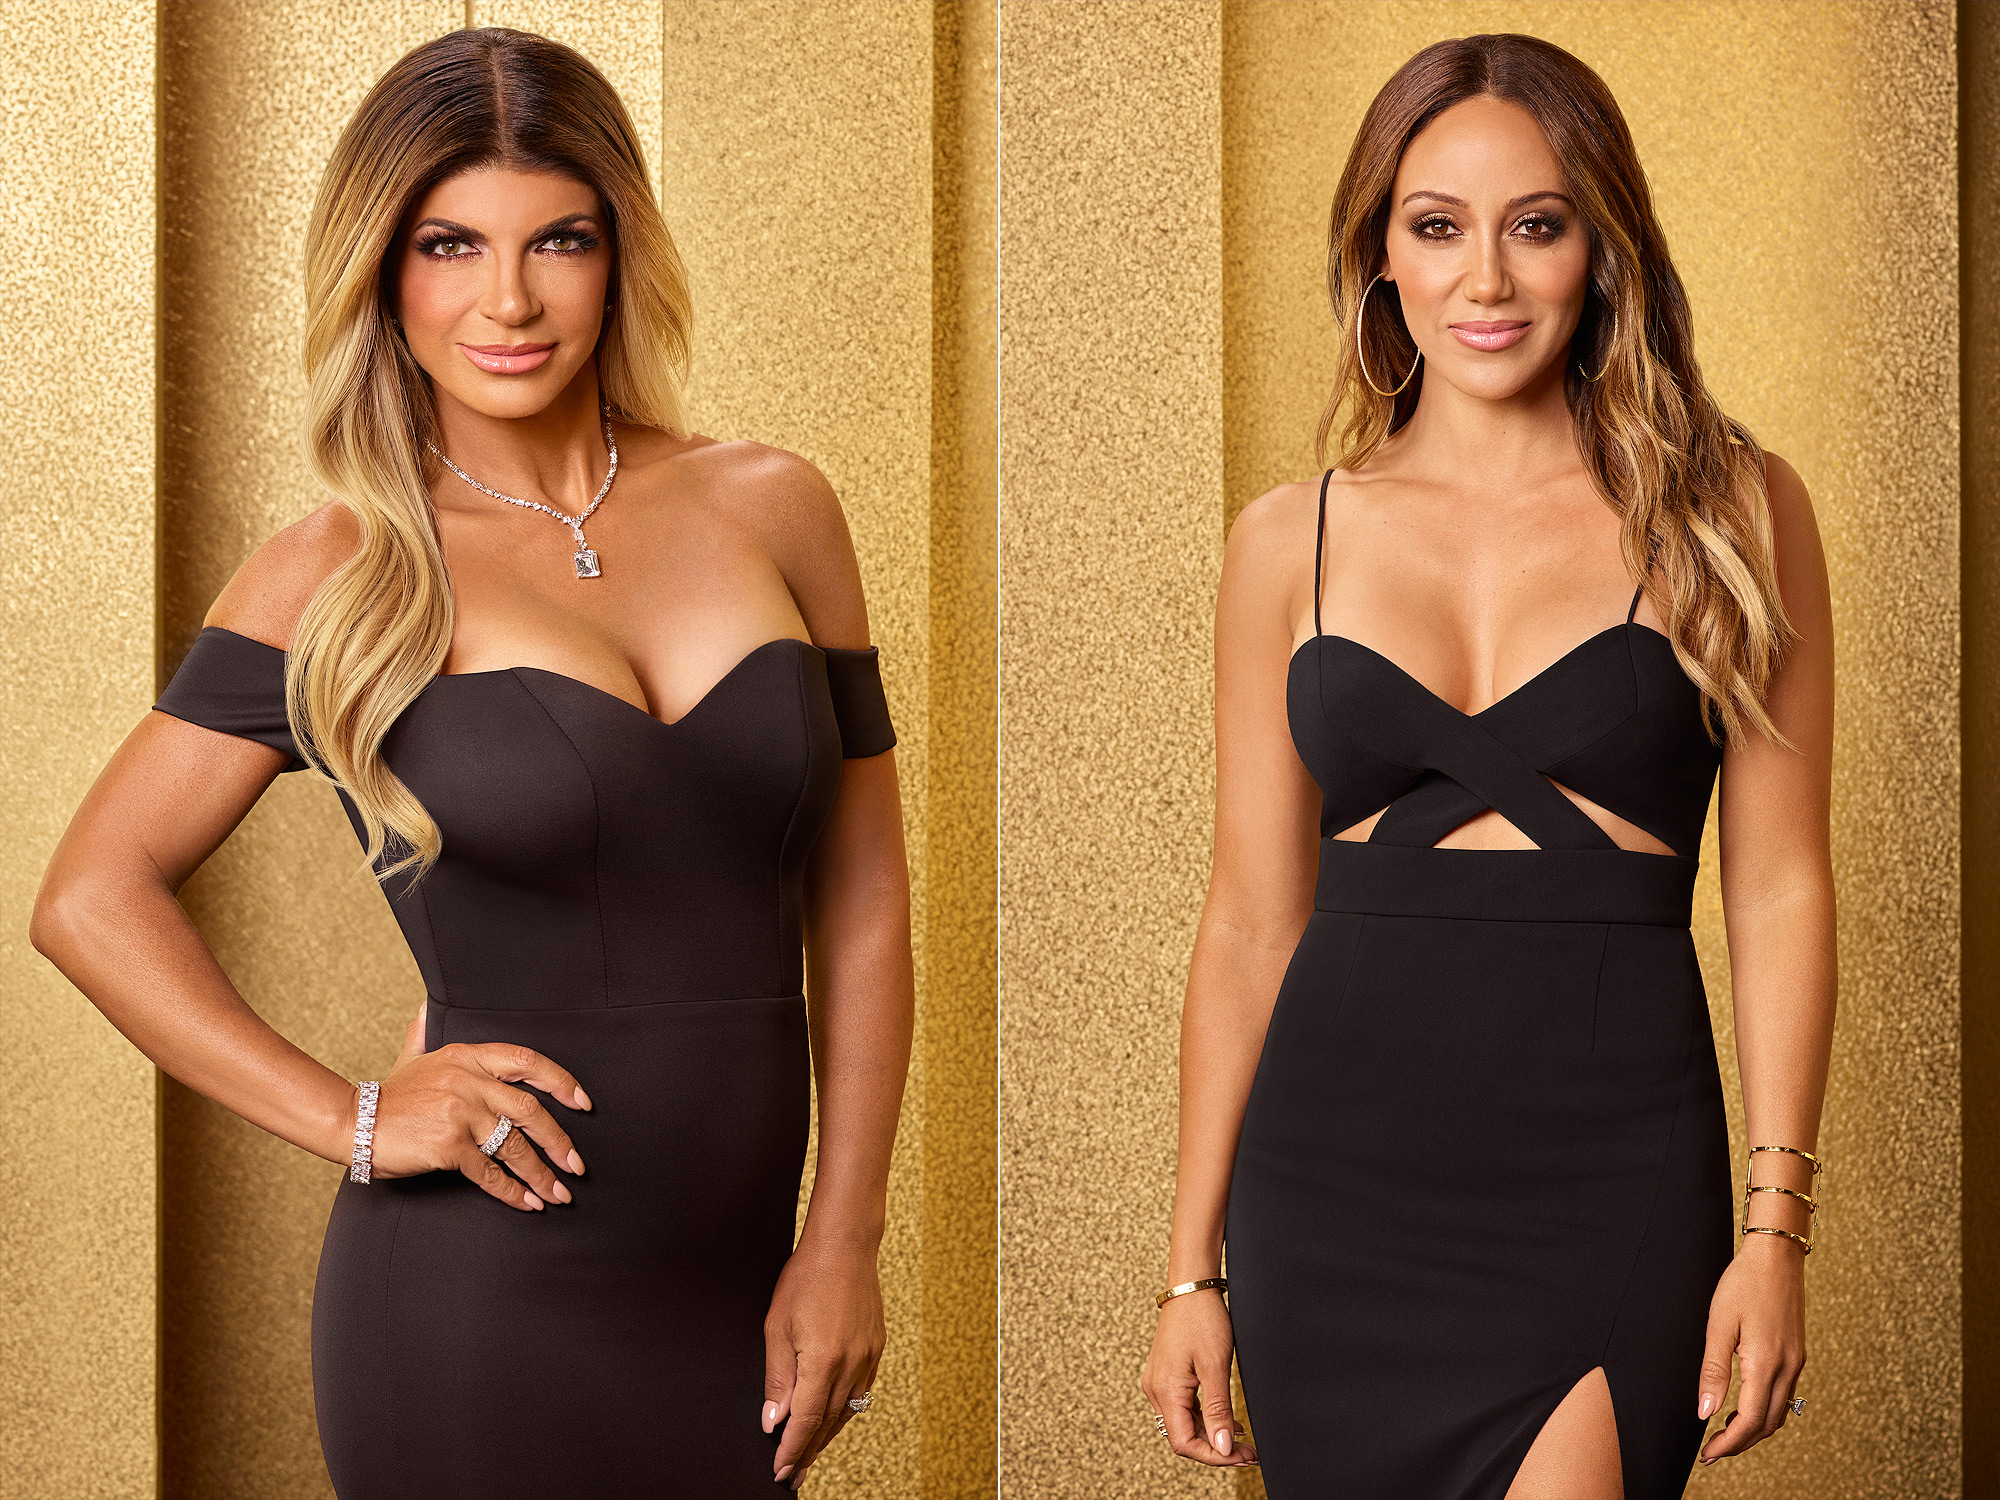 teresa-giudice-and-melissa-gorga-reportedly-dont-like-each-other-at-all-and-the-feud-with-jennifer-aydin-is-not-helping